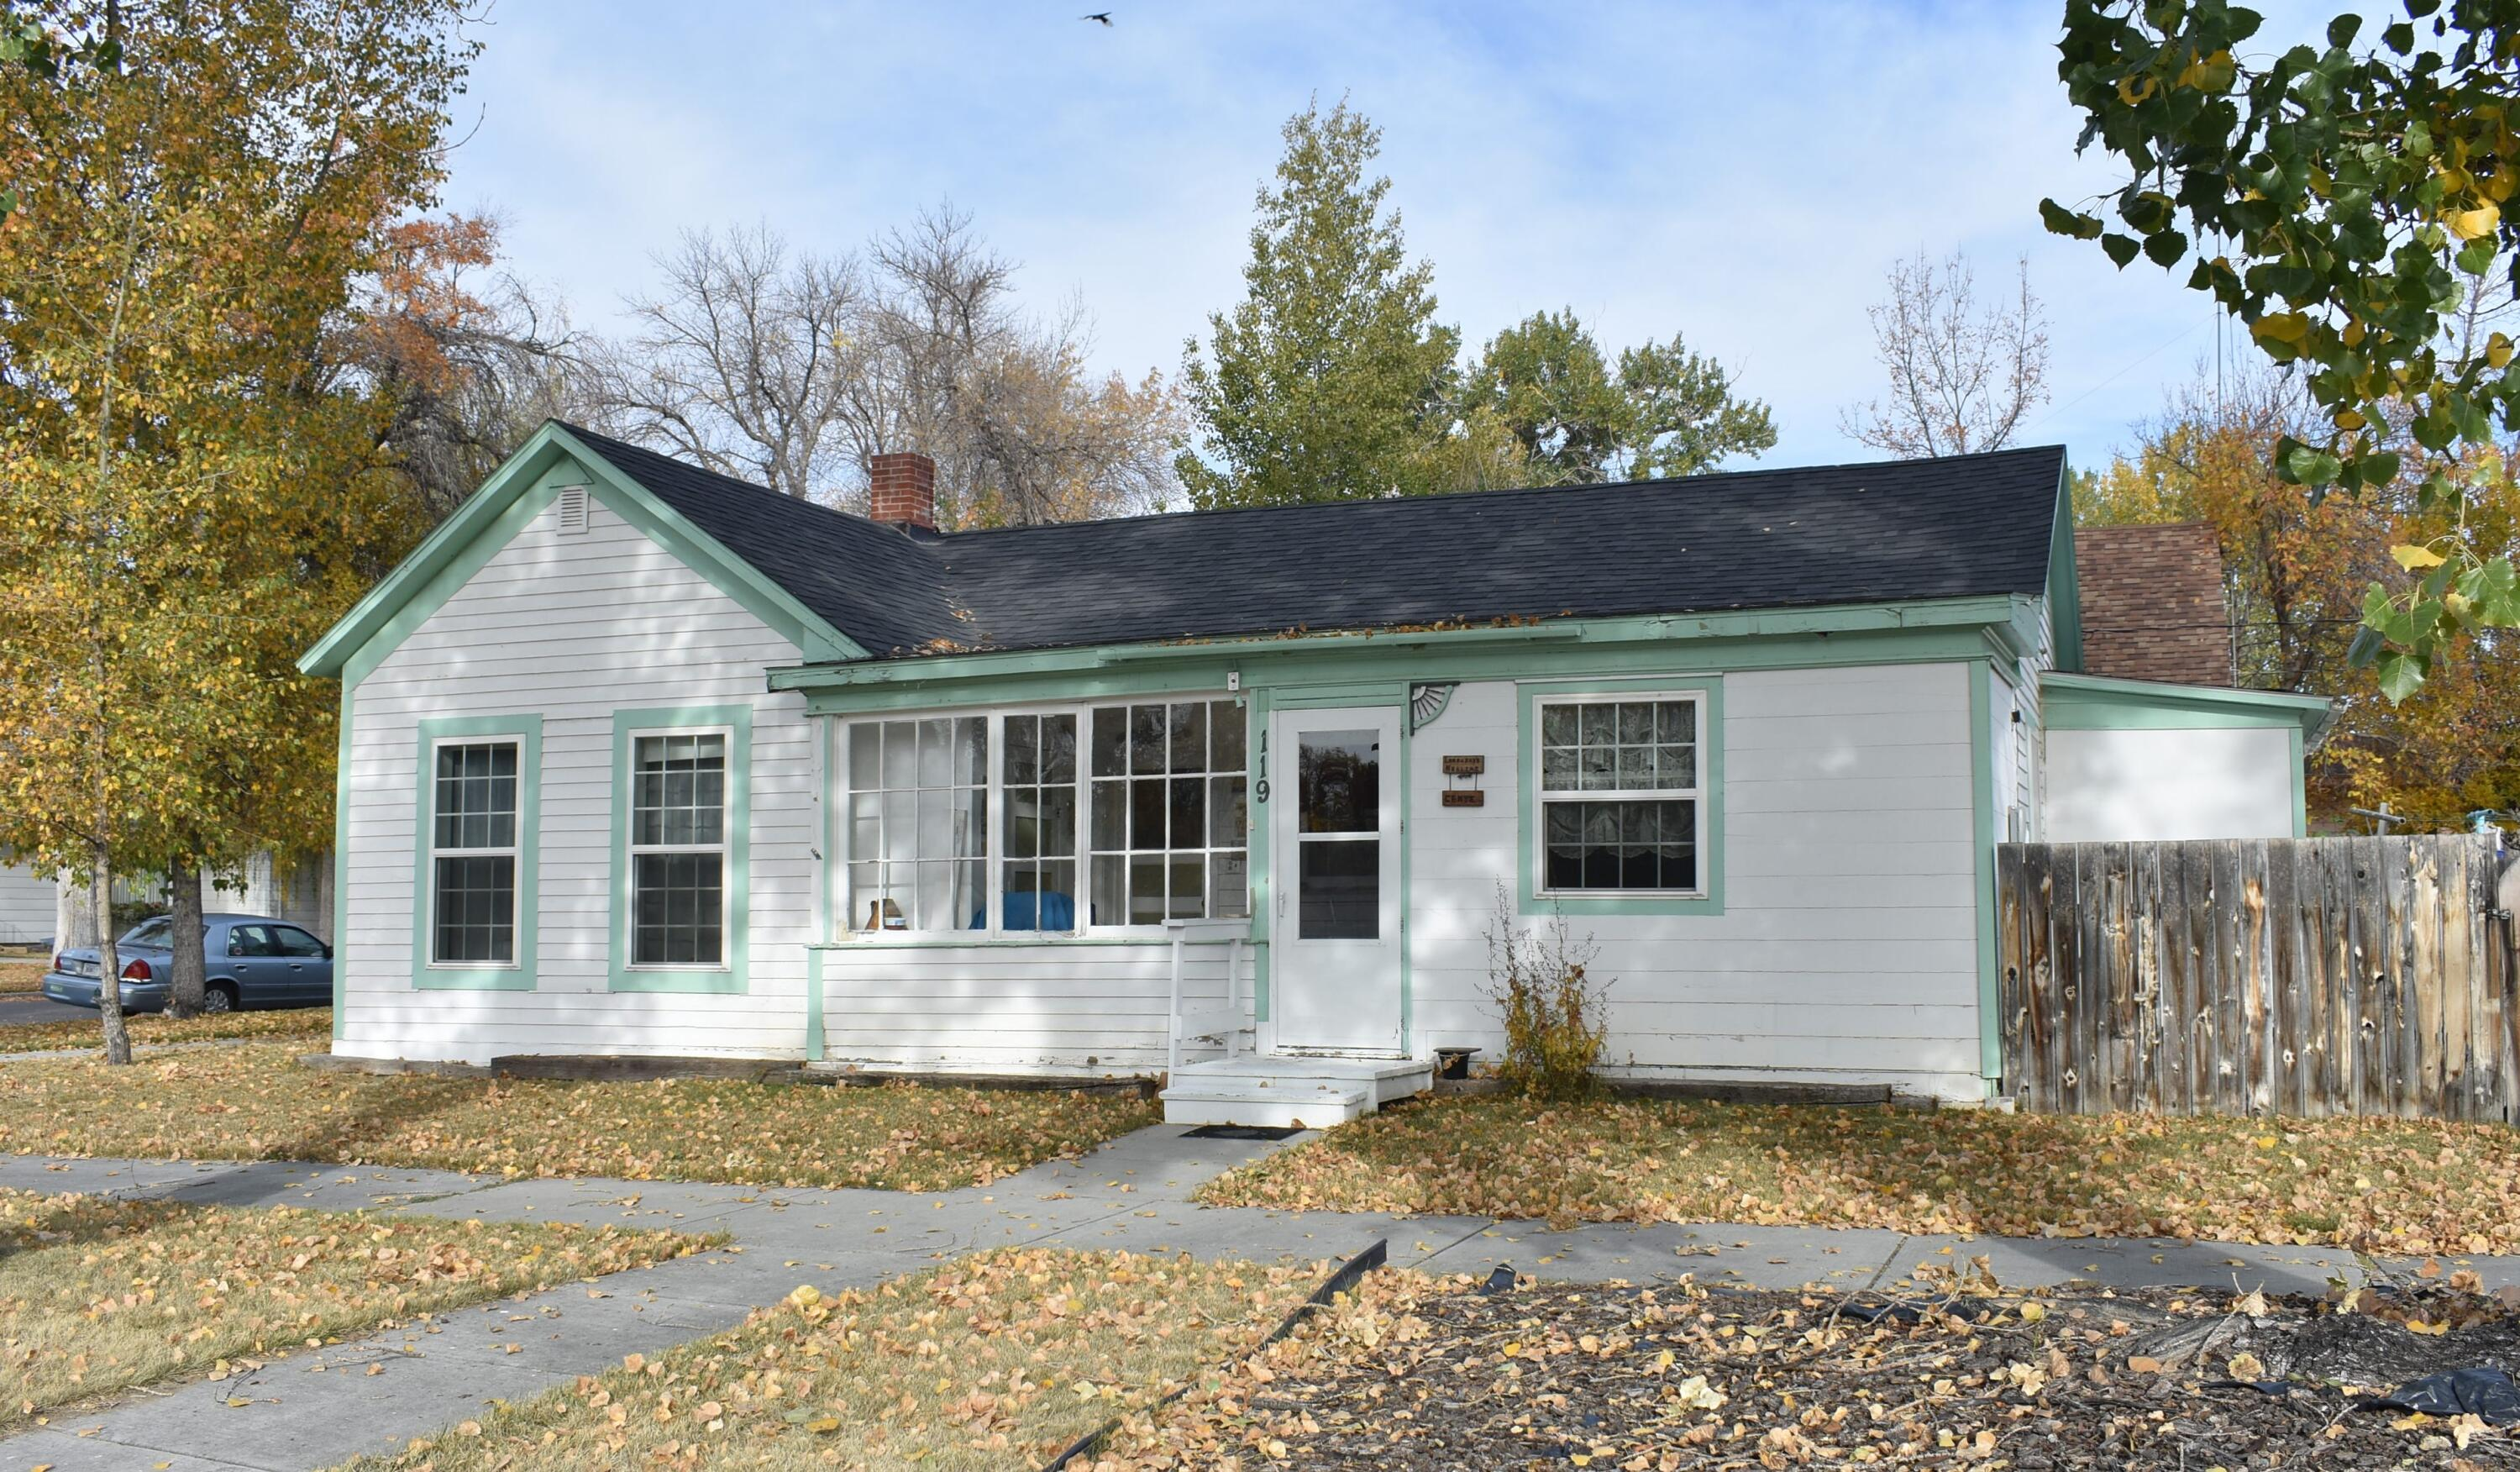 Nice liveable home located just 2 blocks from downtown Choteau.  Corner lot with newer detached garage.  This property is being sold ''as is''.  Some wiring and plumbing has been updated.   Newer roof and some new windows.  Seller will not make any repairs or concessions.  Call Phyllis Bechtold at 406-799-7222 or your real estate professional to schedule a showing.